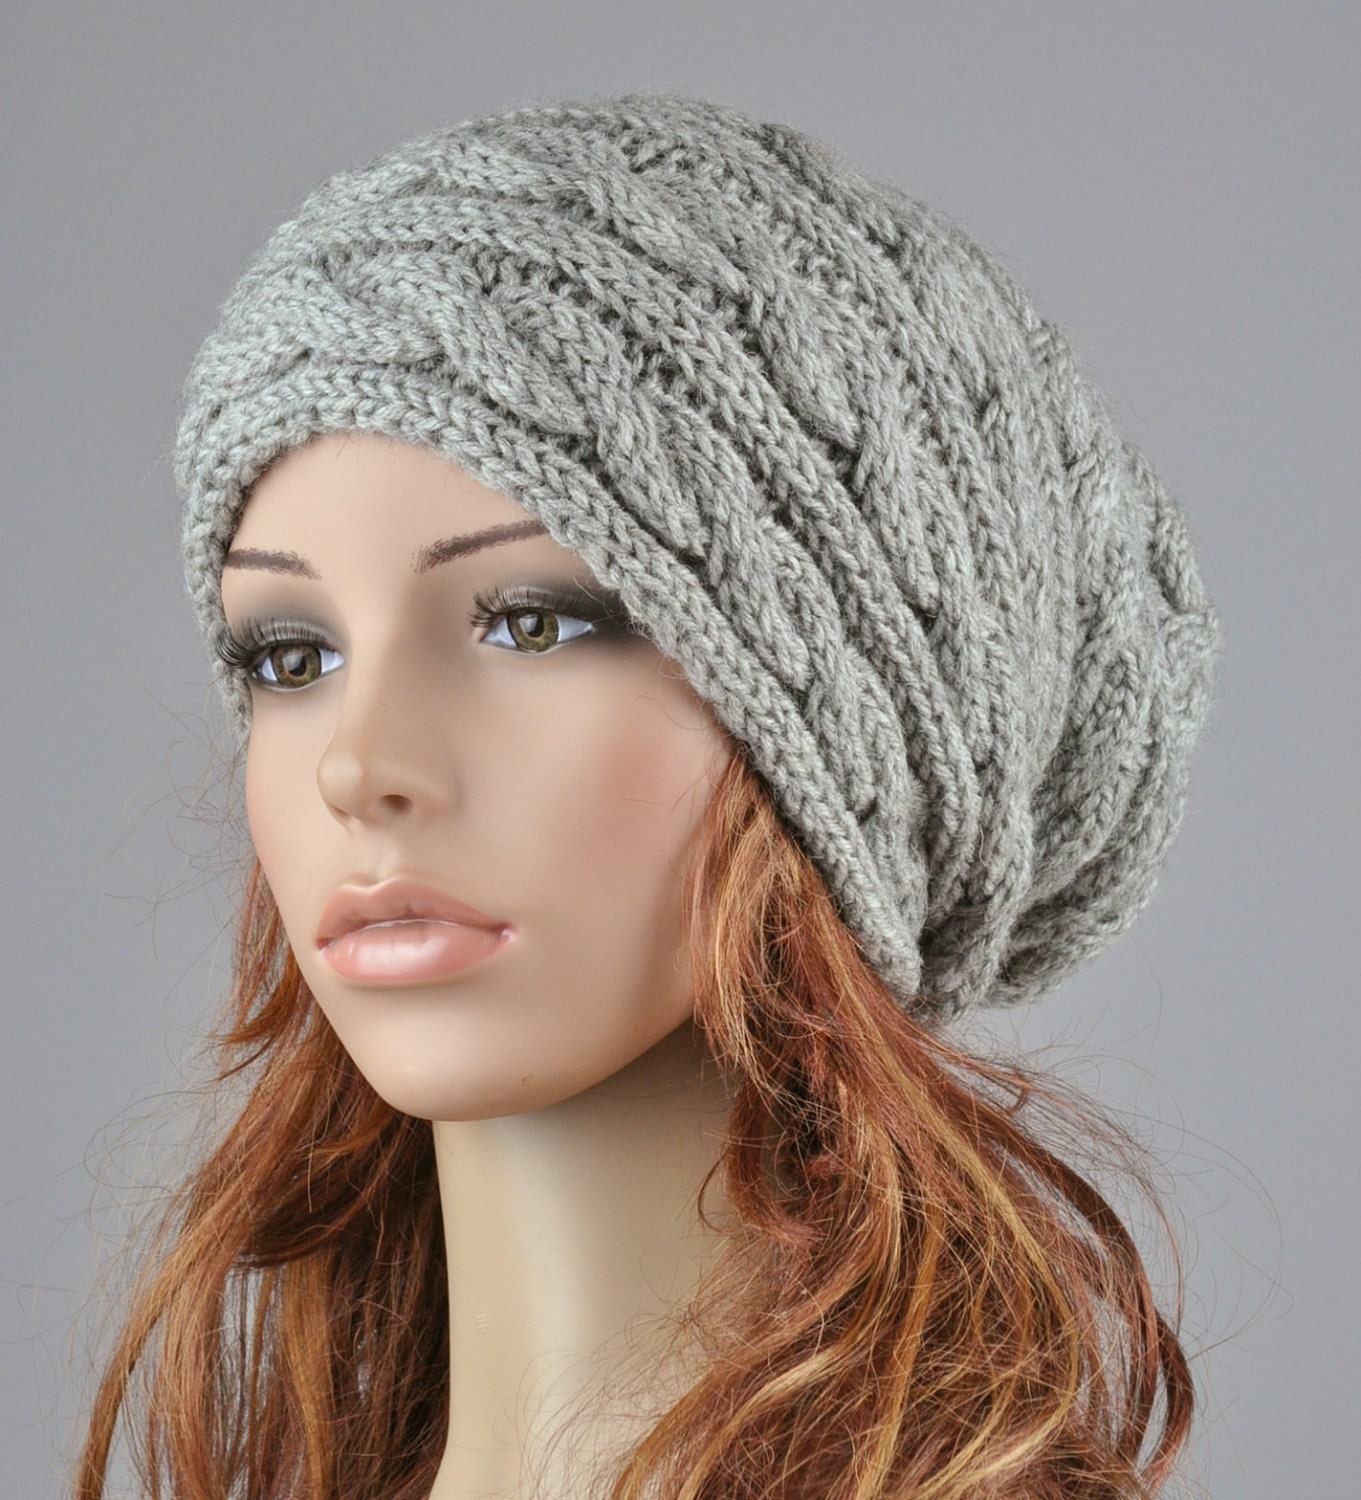 Slouch Hat Knitting Pattern : Hand knit hat Grey hat slouchy hat cable pattern hat